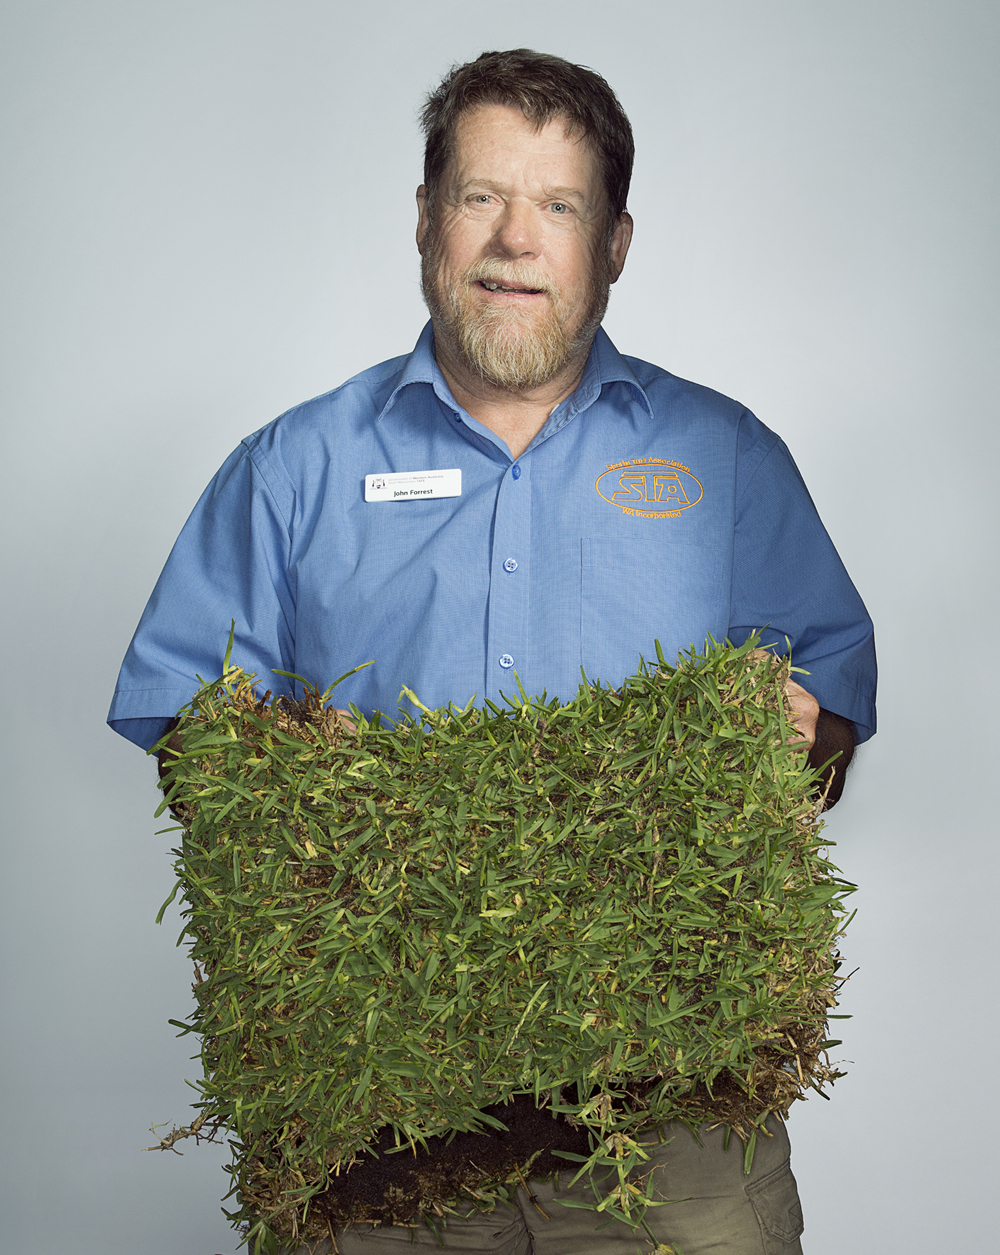 Portrait of John Forrest holding some turf